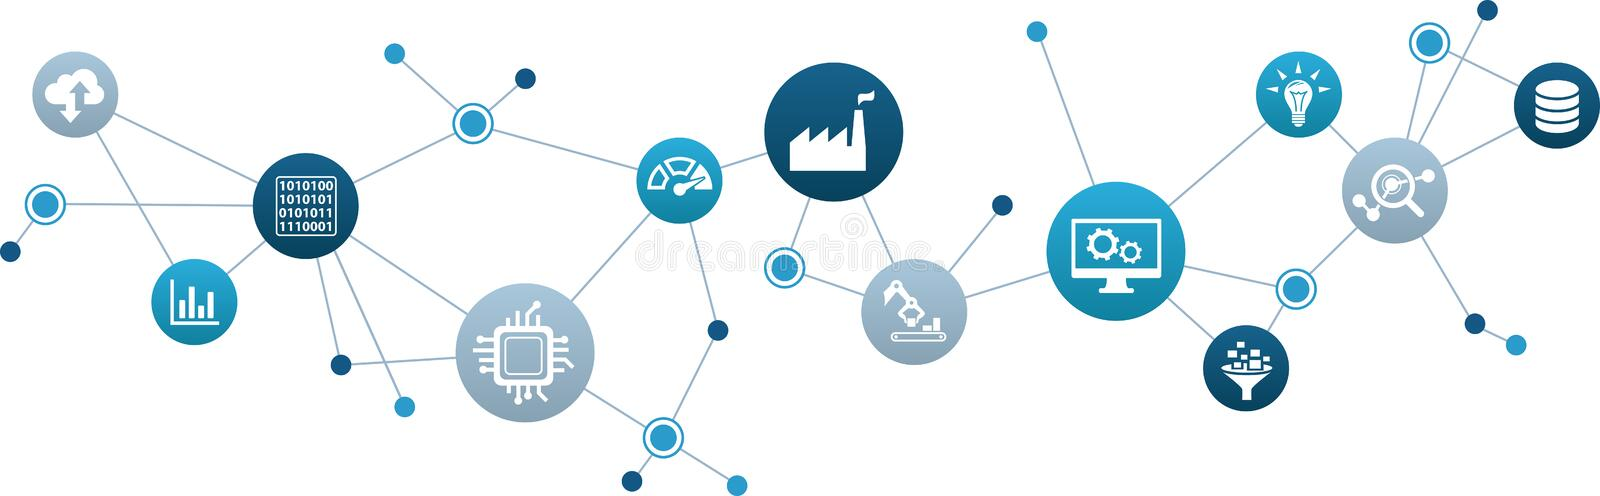 Industrial internet of things / digitalization / business automation - vector illustration stock illustration